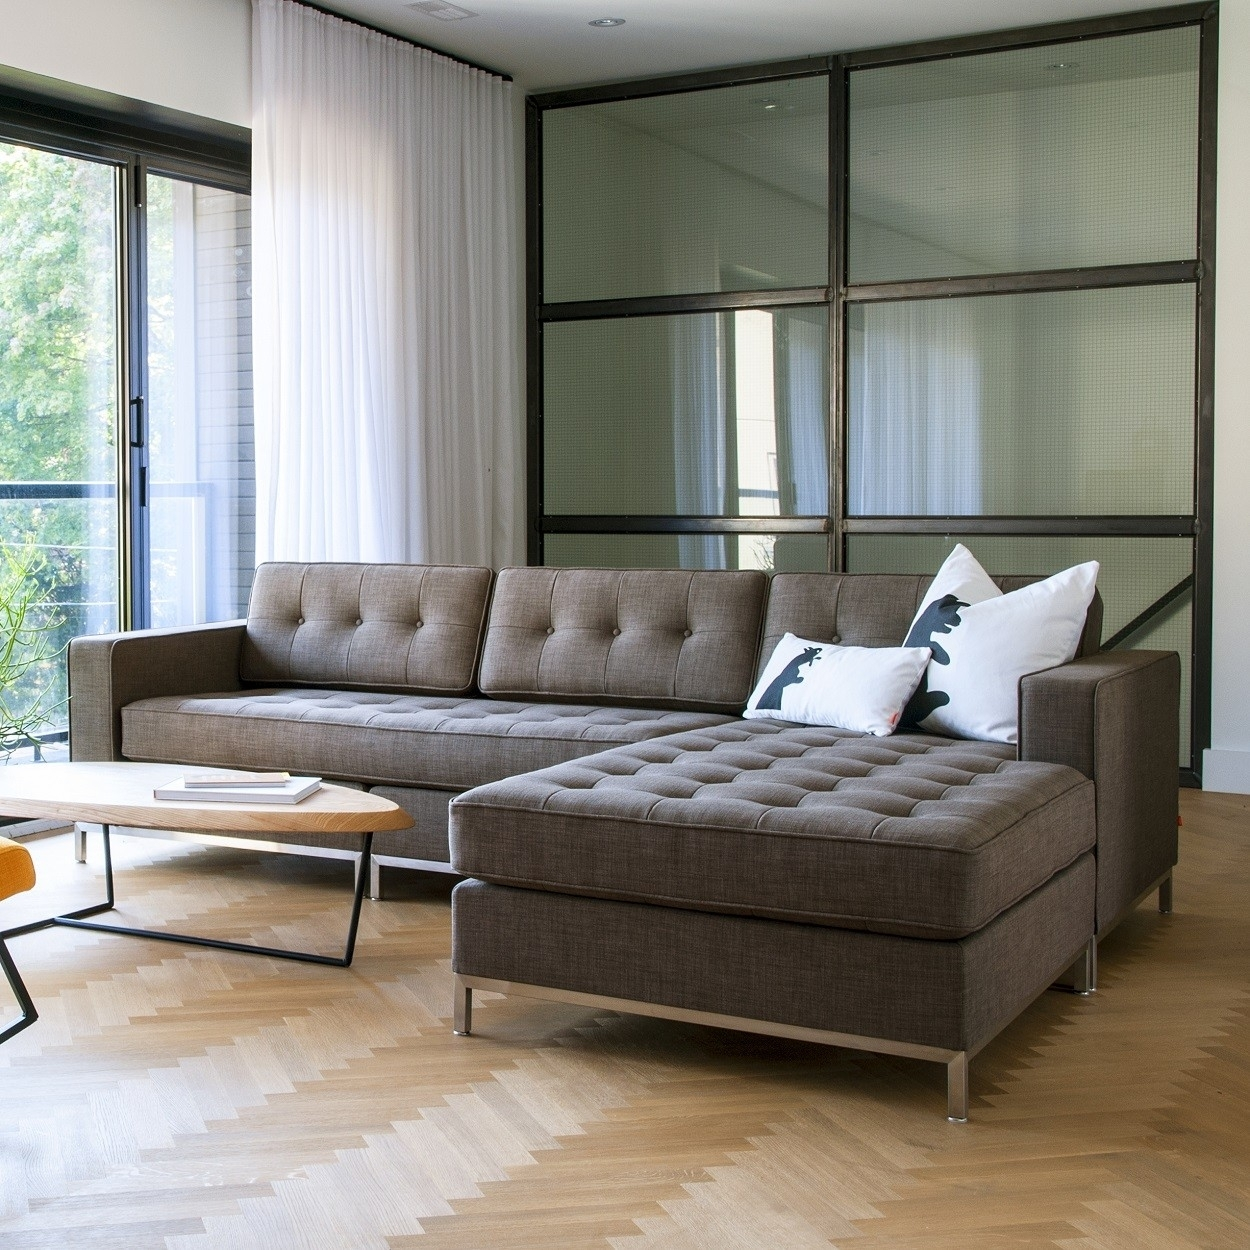 Modern Sectional Sofas For Sale (View 10 of 10)